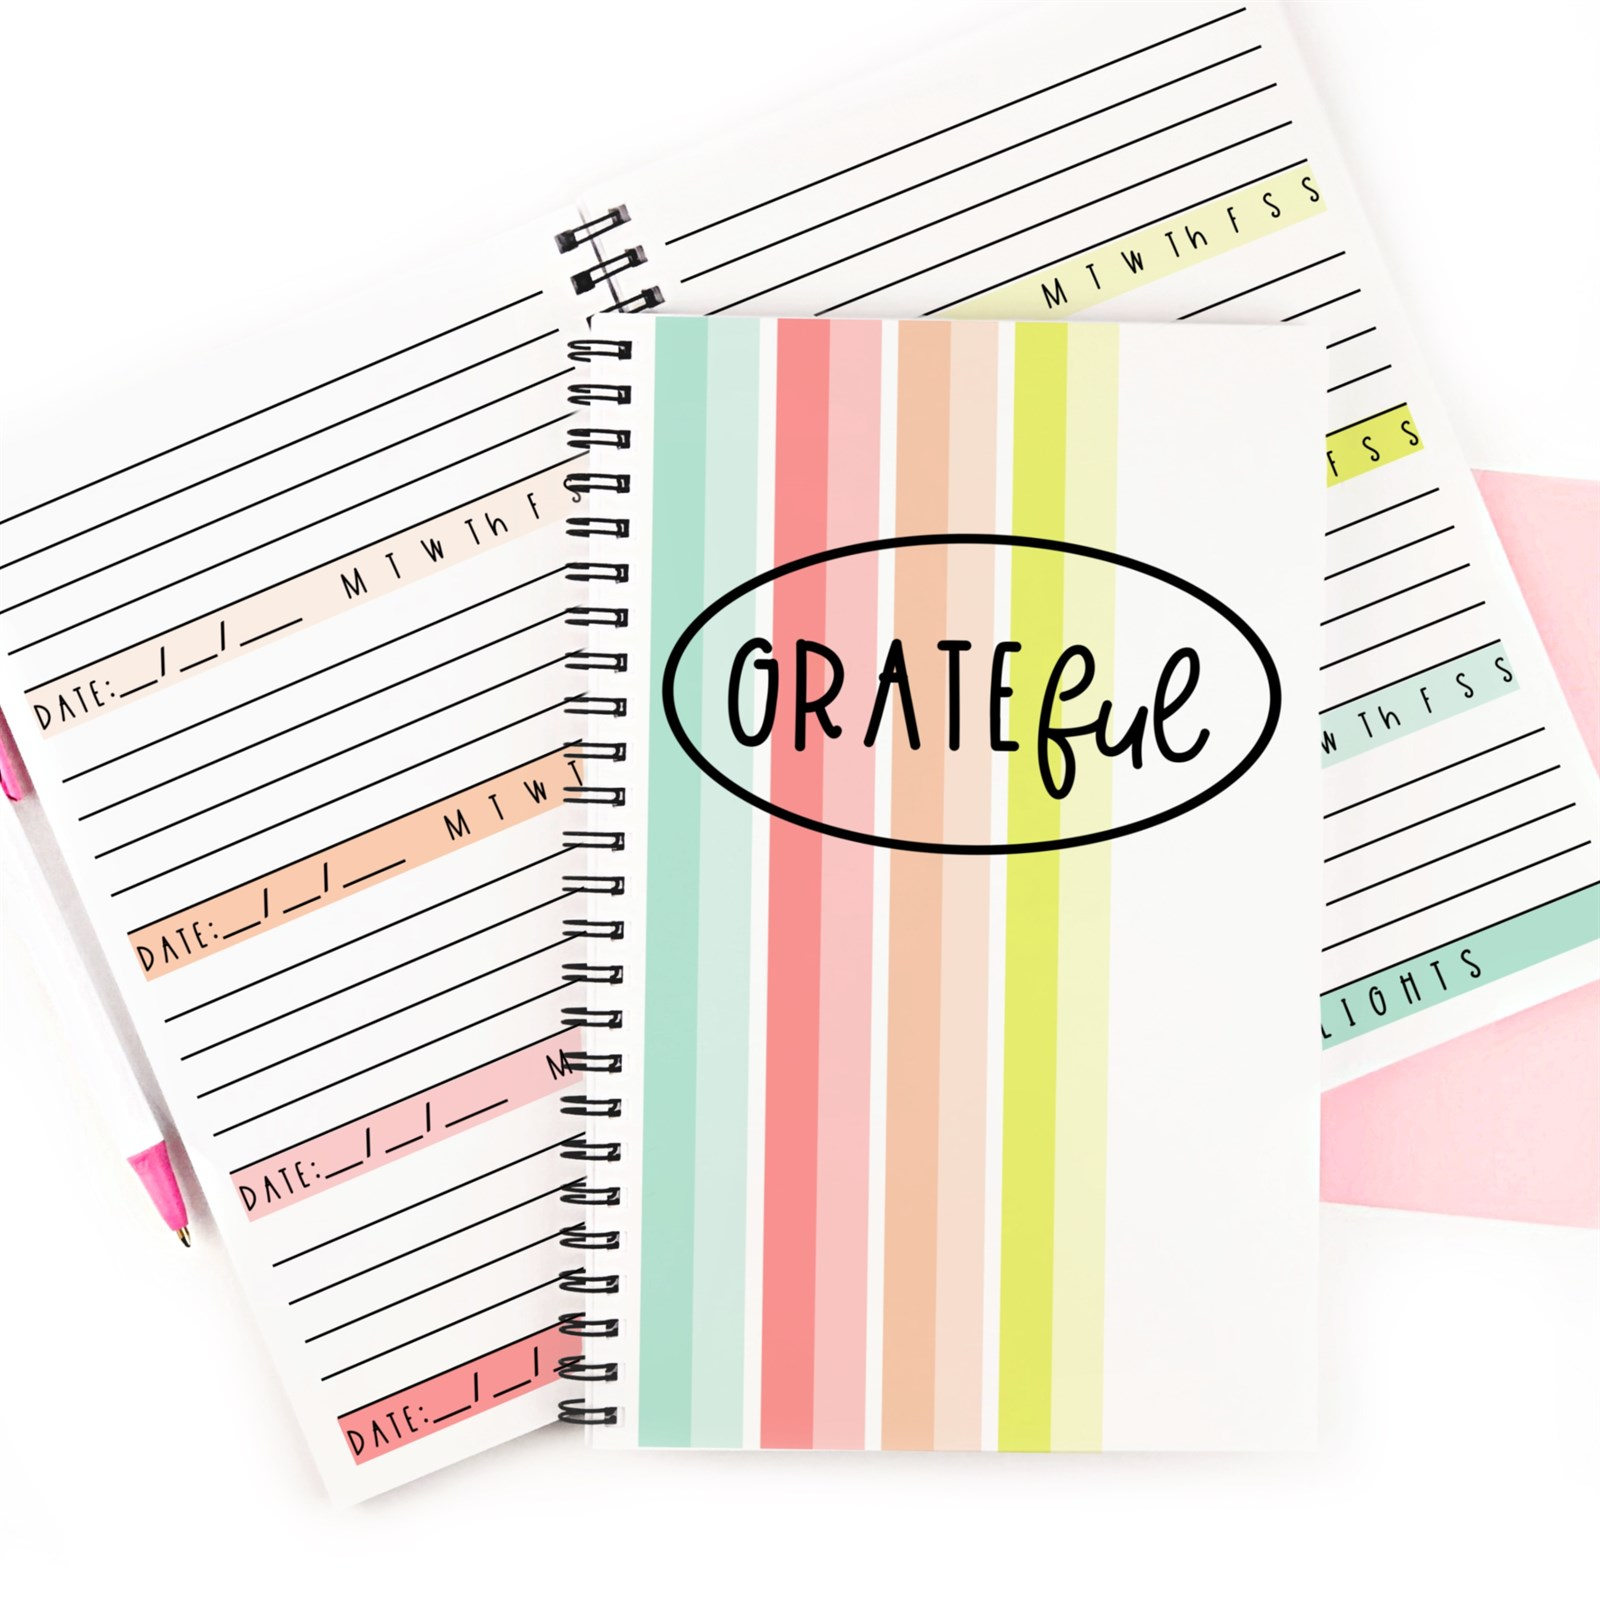 Daily Gratitude Journal Only $14.99 w/ Free Shipping